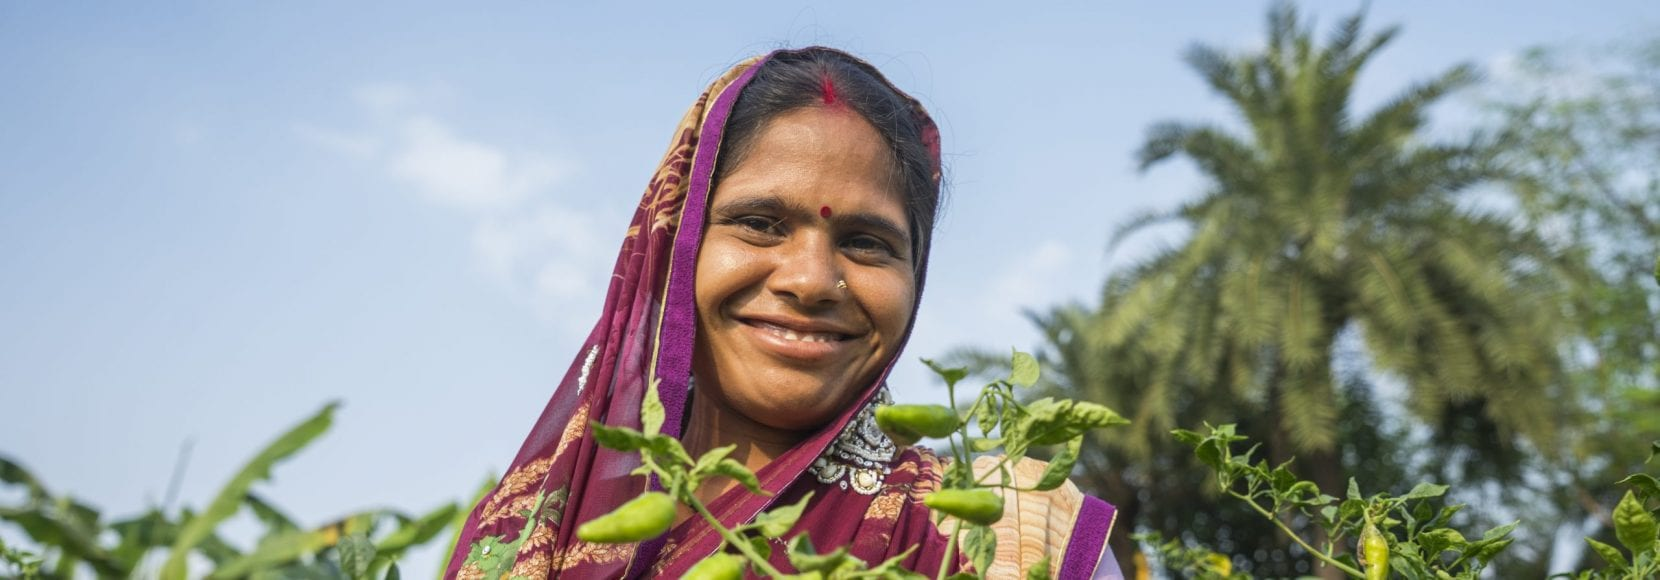 Woman smiling holding plants